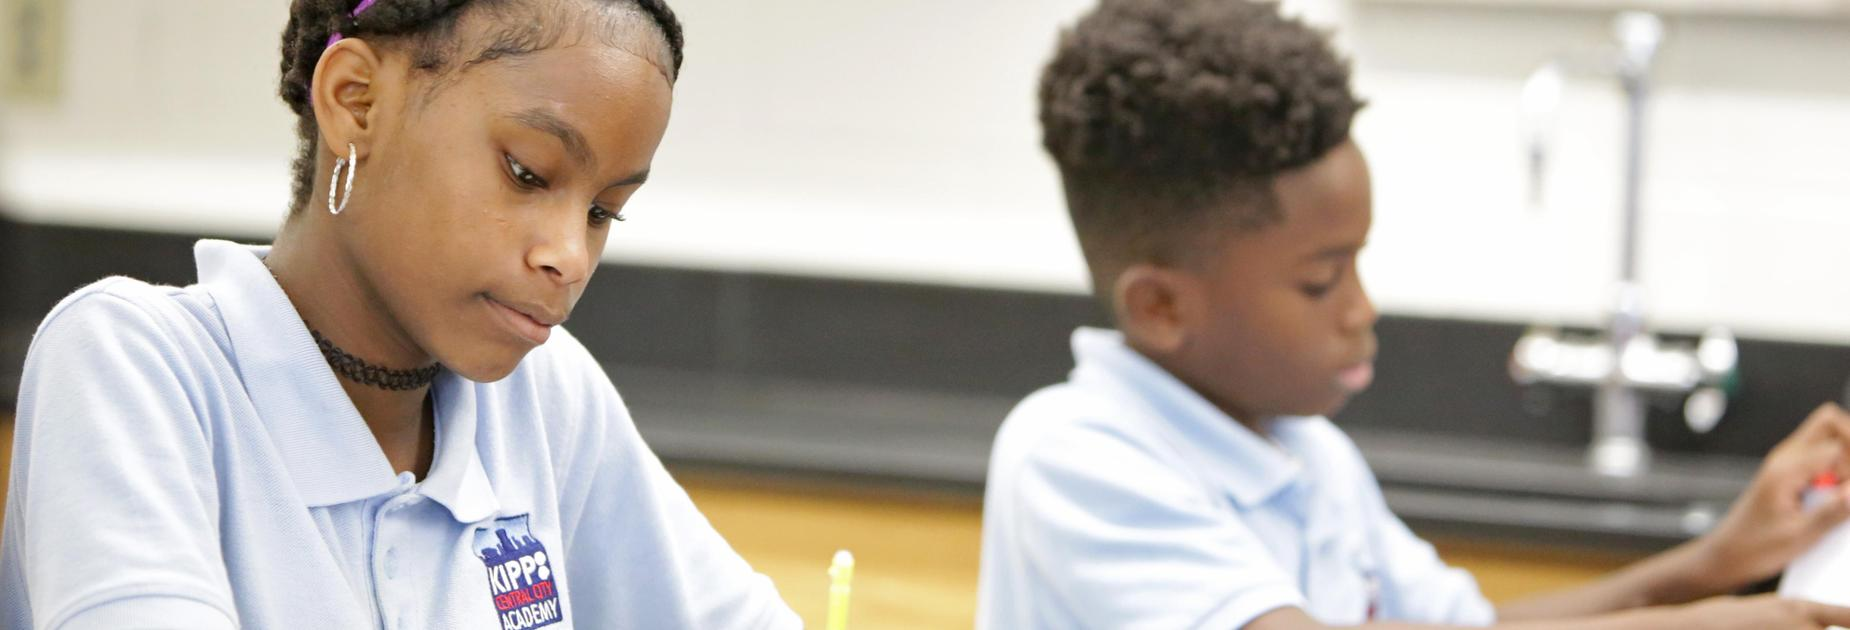 a female and male KCCA student working at a desk in a science lab